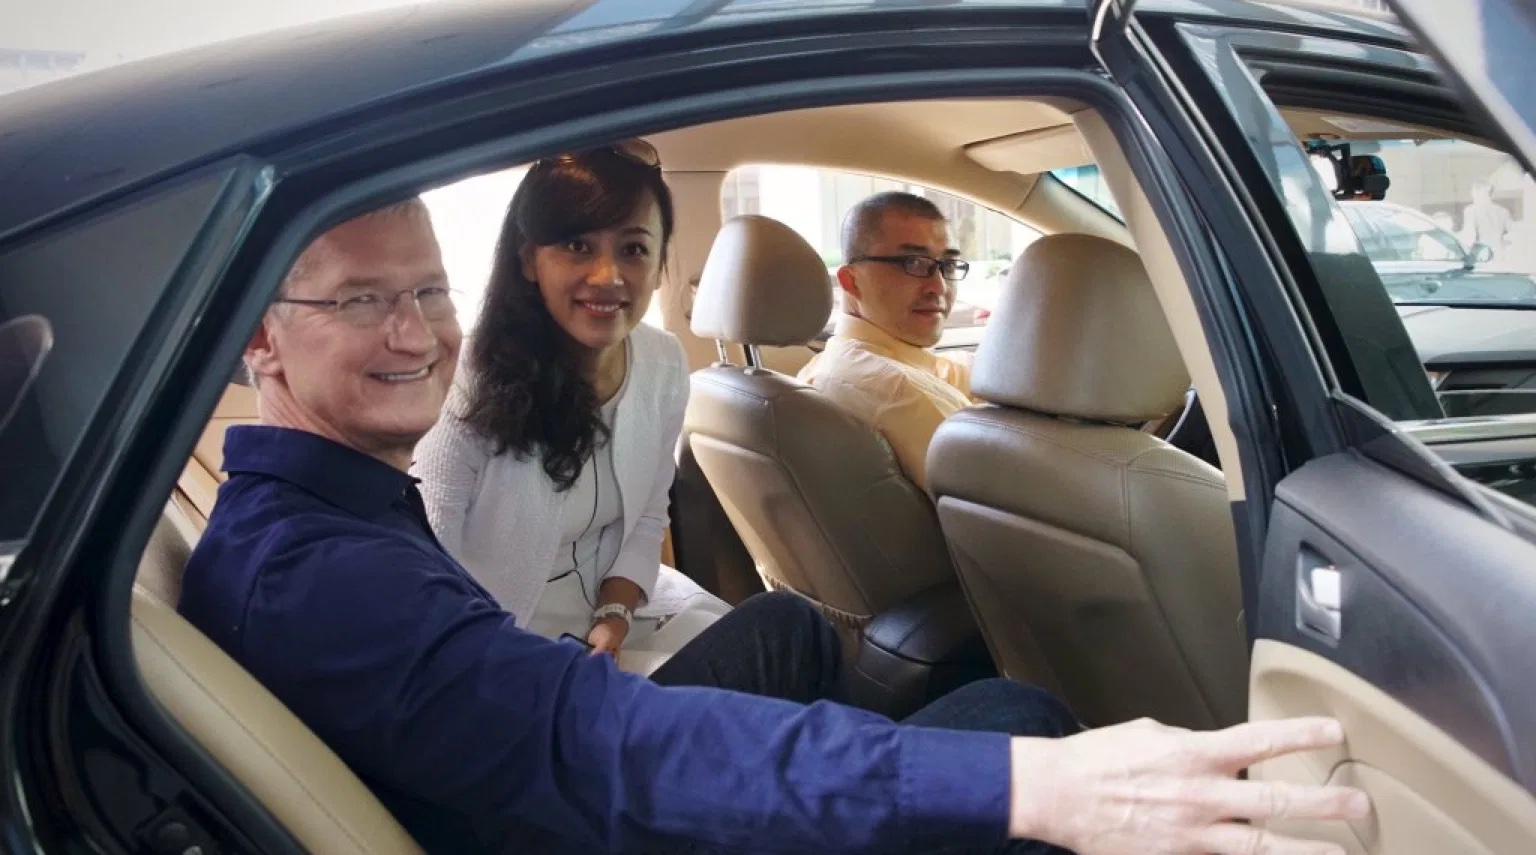 Ride-hailing service Didi removed from App Store over privacy issues